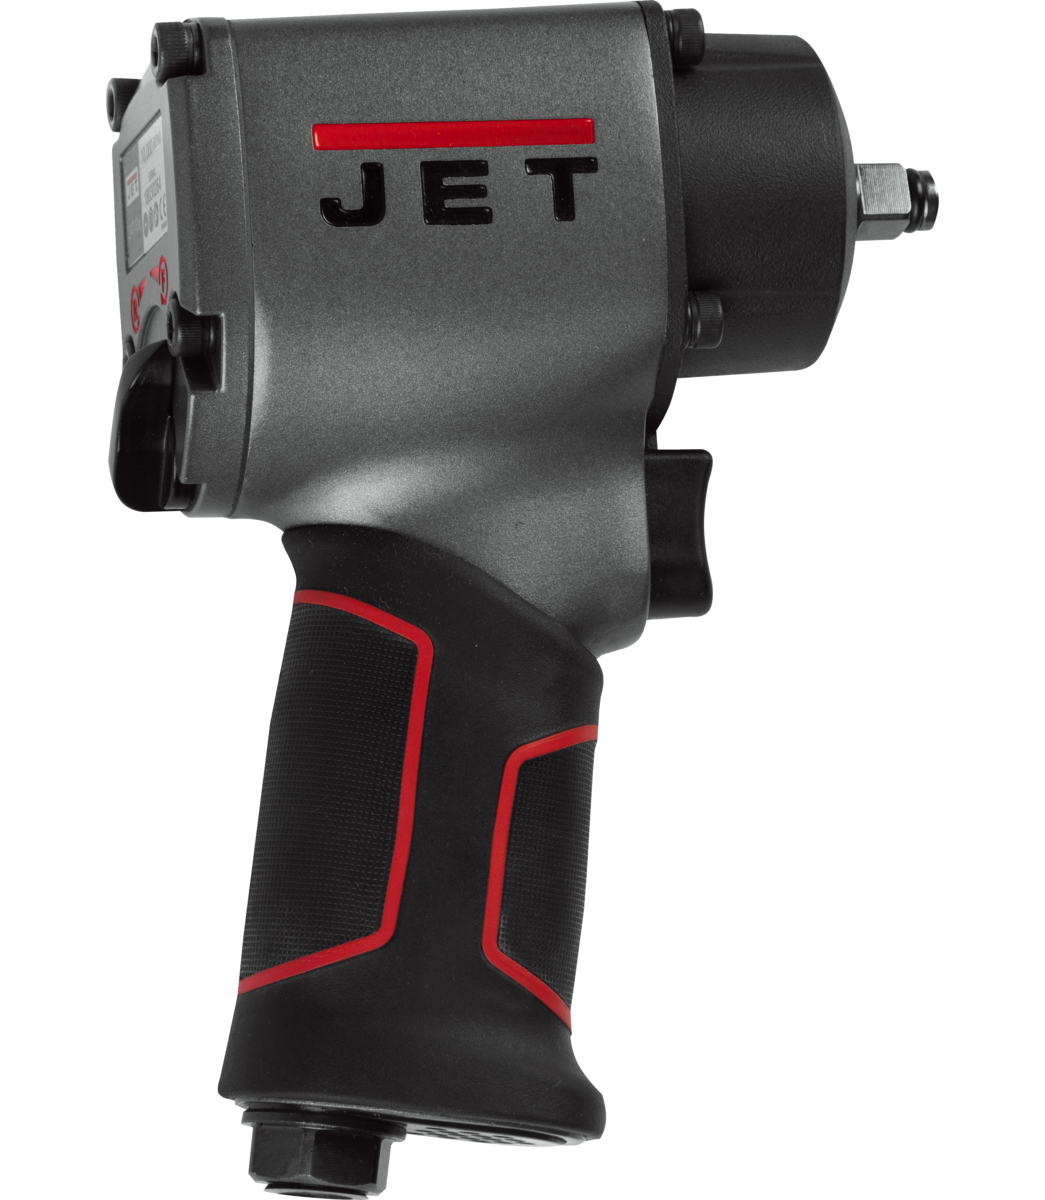 """JAT-106, 3/8"""" Compact Impact Wrench"""